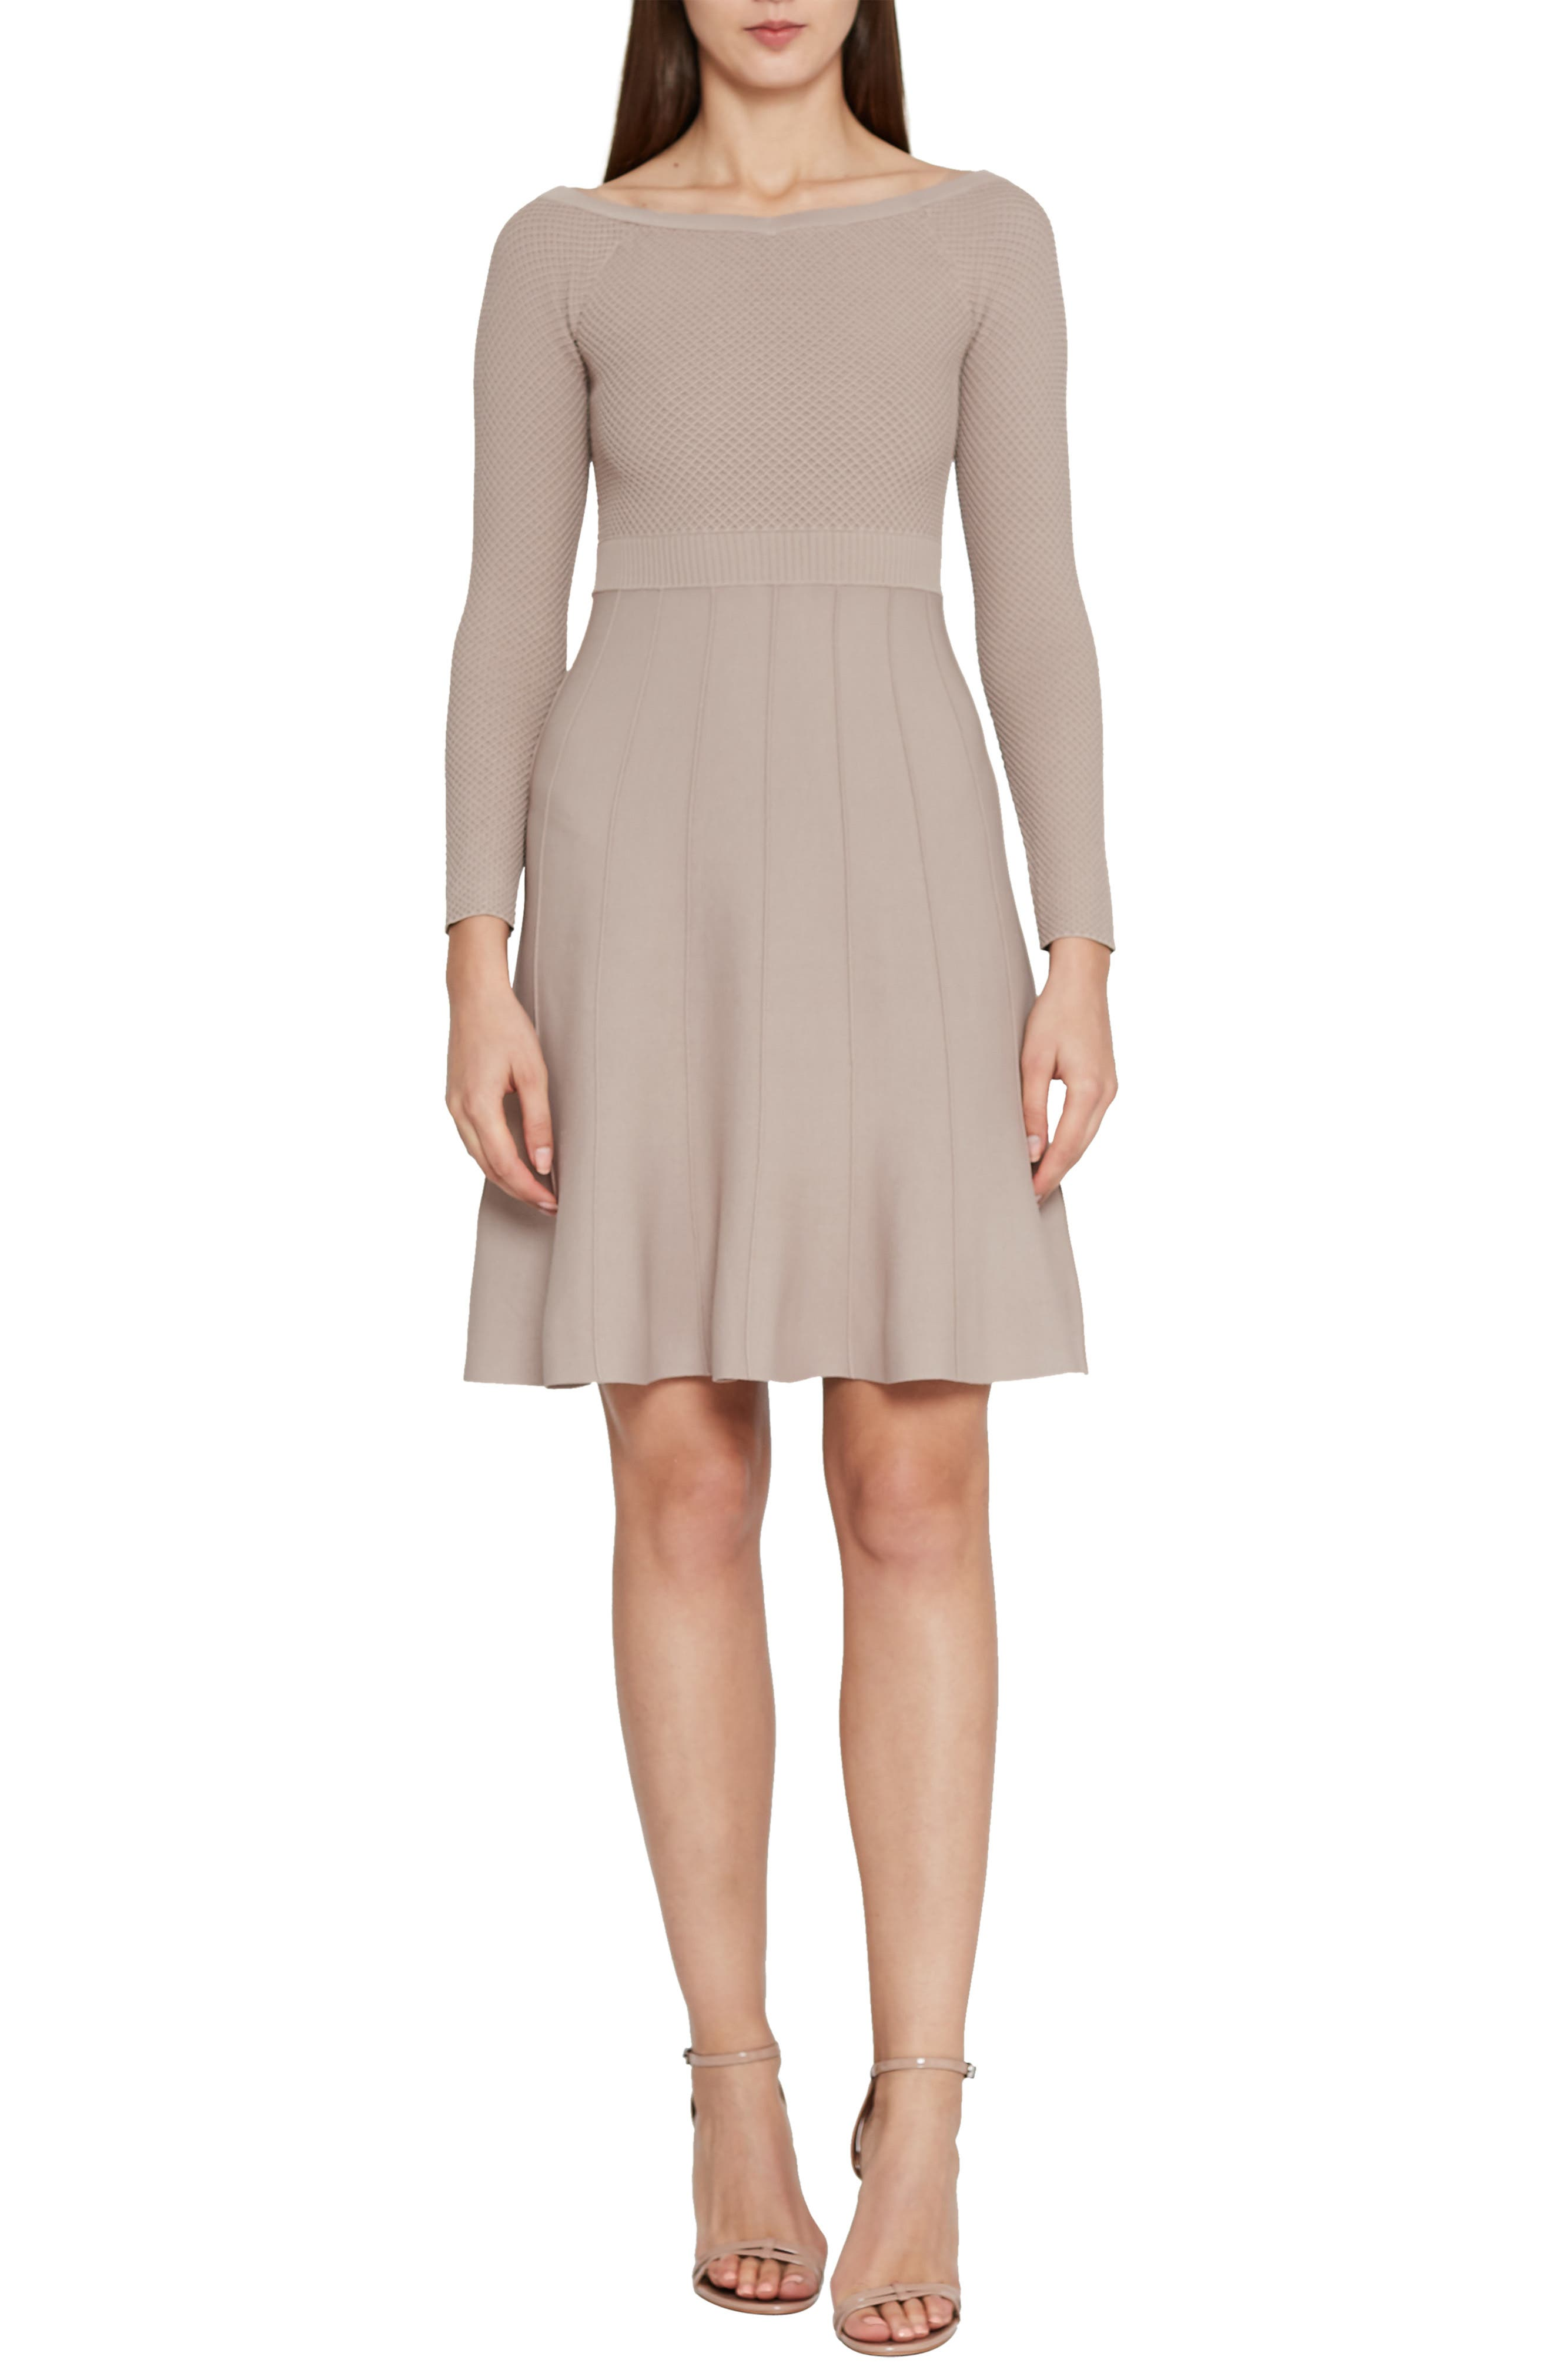 Astra Textured Skater Dress,                         Main,                         color, NEUTRAL